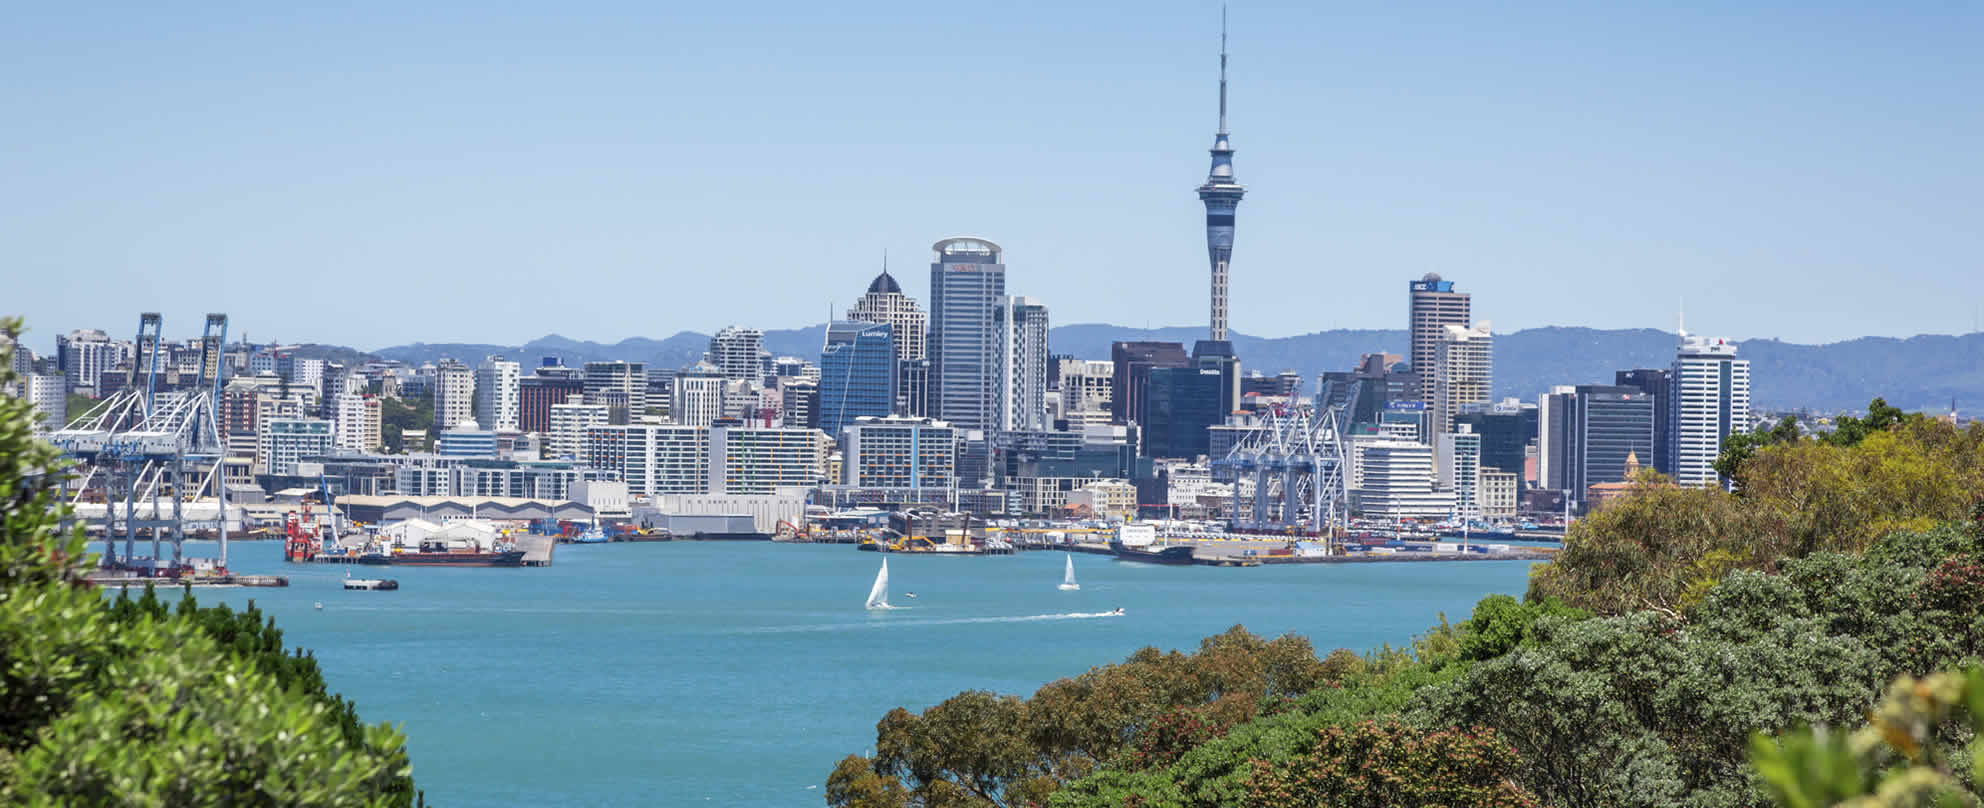 Scenic view of Auckland city across the bay with lush green trees in foreground.